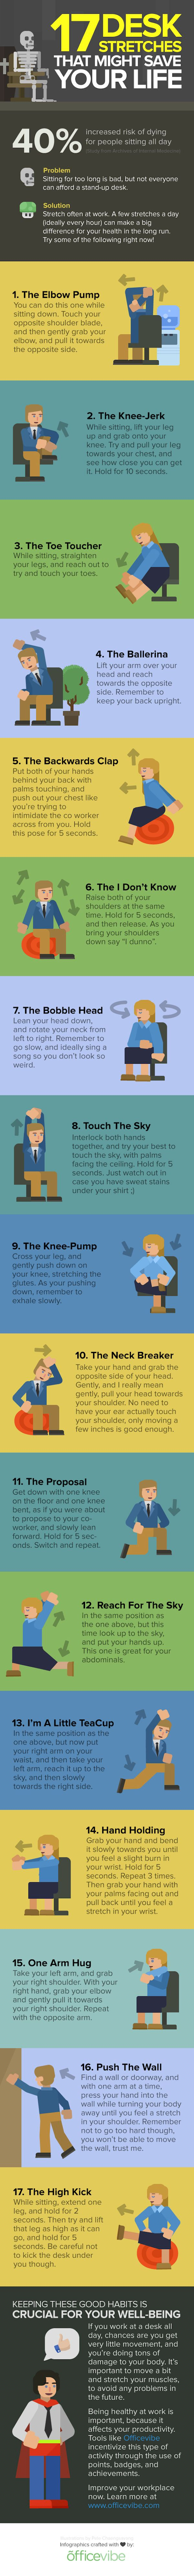 Infographic: 17 Desk Stretches That Might Save Your Life - DesignTAXI.com